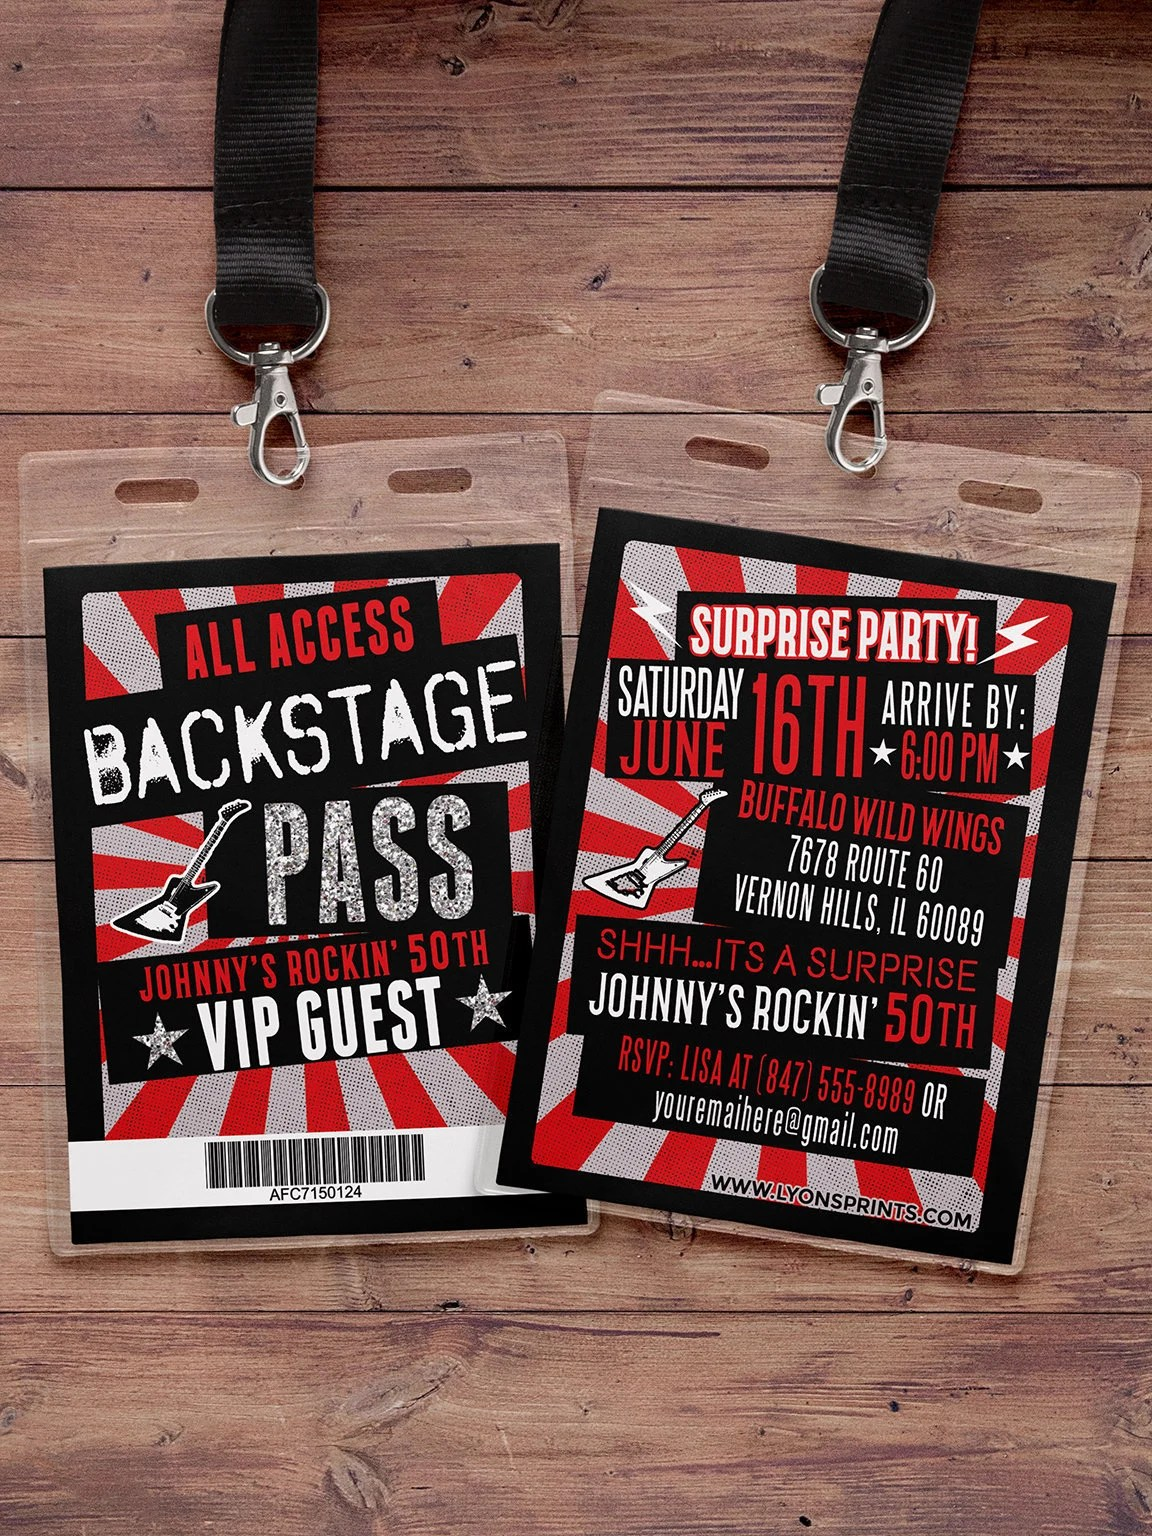 vip pass backstage pass concert ticket birthday invitation 40th 30th 21st 50th party favor lanyard rock star